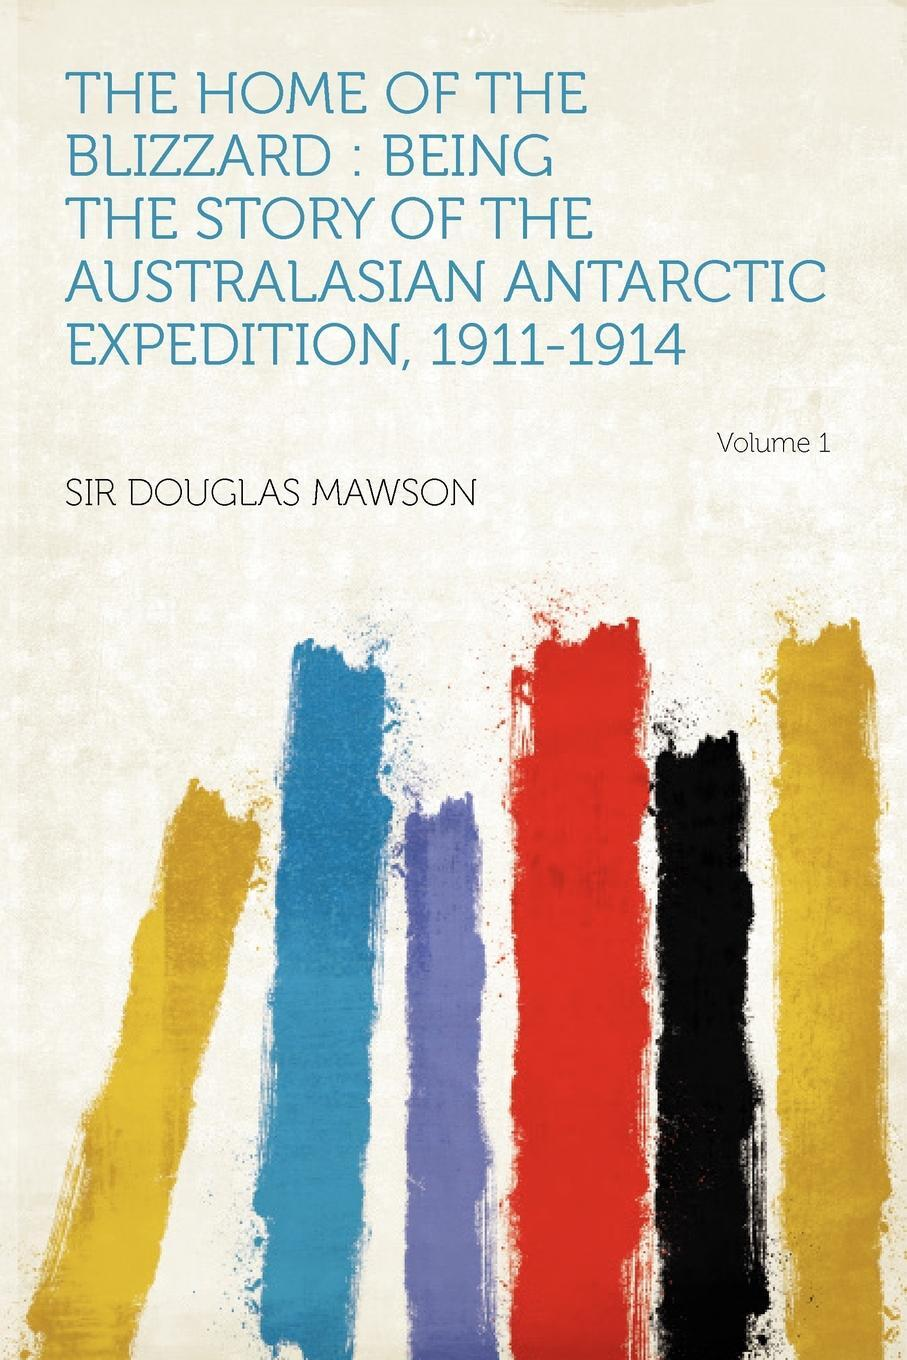 The Home of the Blizzard. Being the Story of the Australasian Antarctic Expedition, 1911-1914 Volume 1.